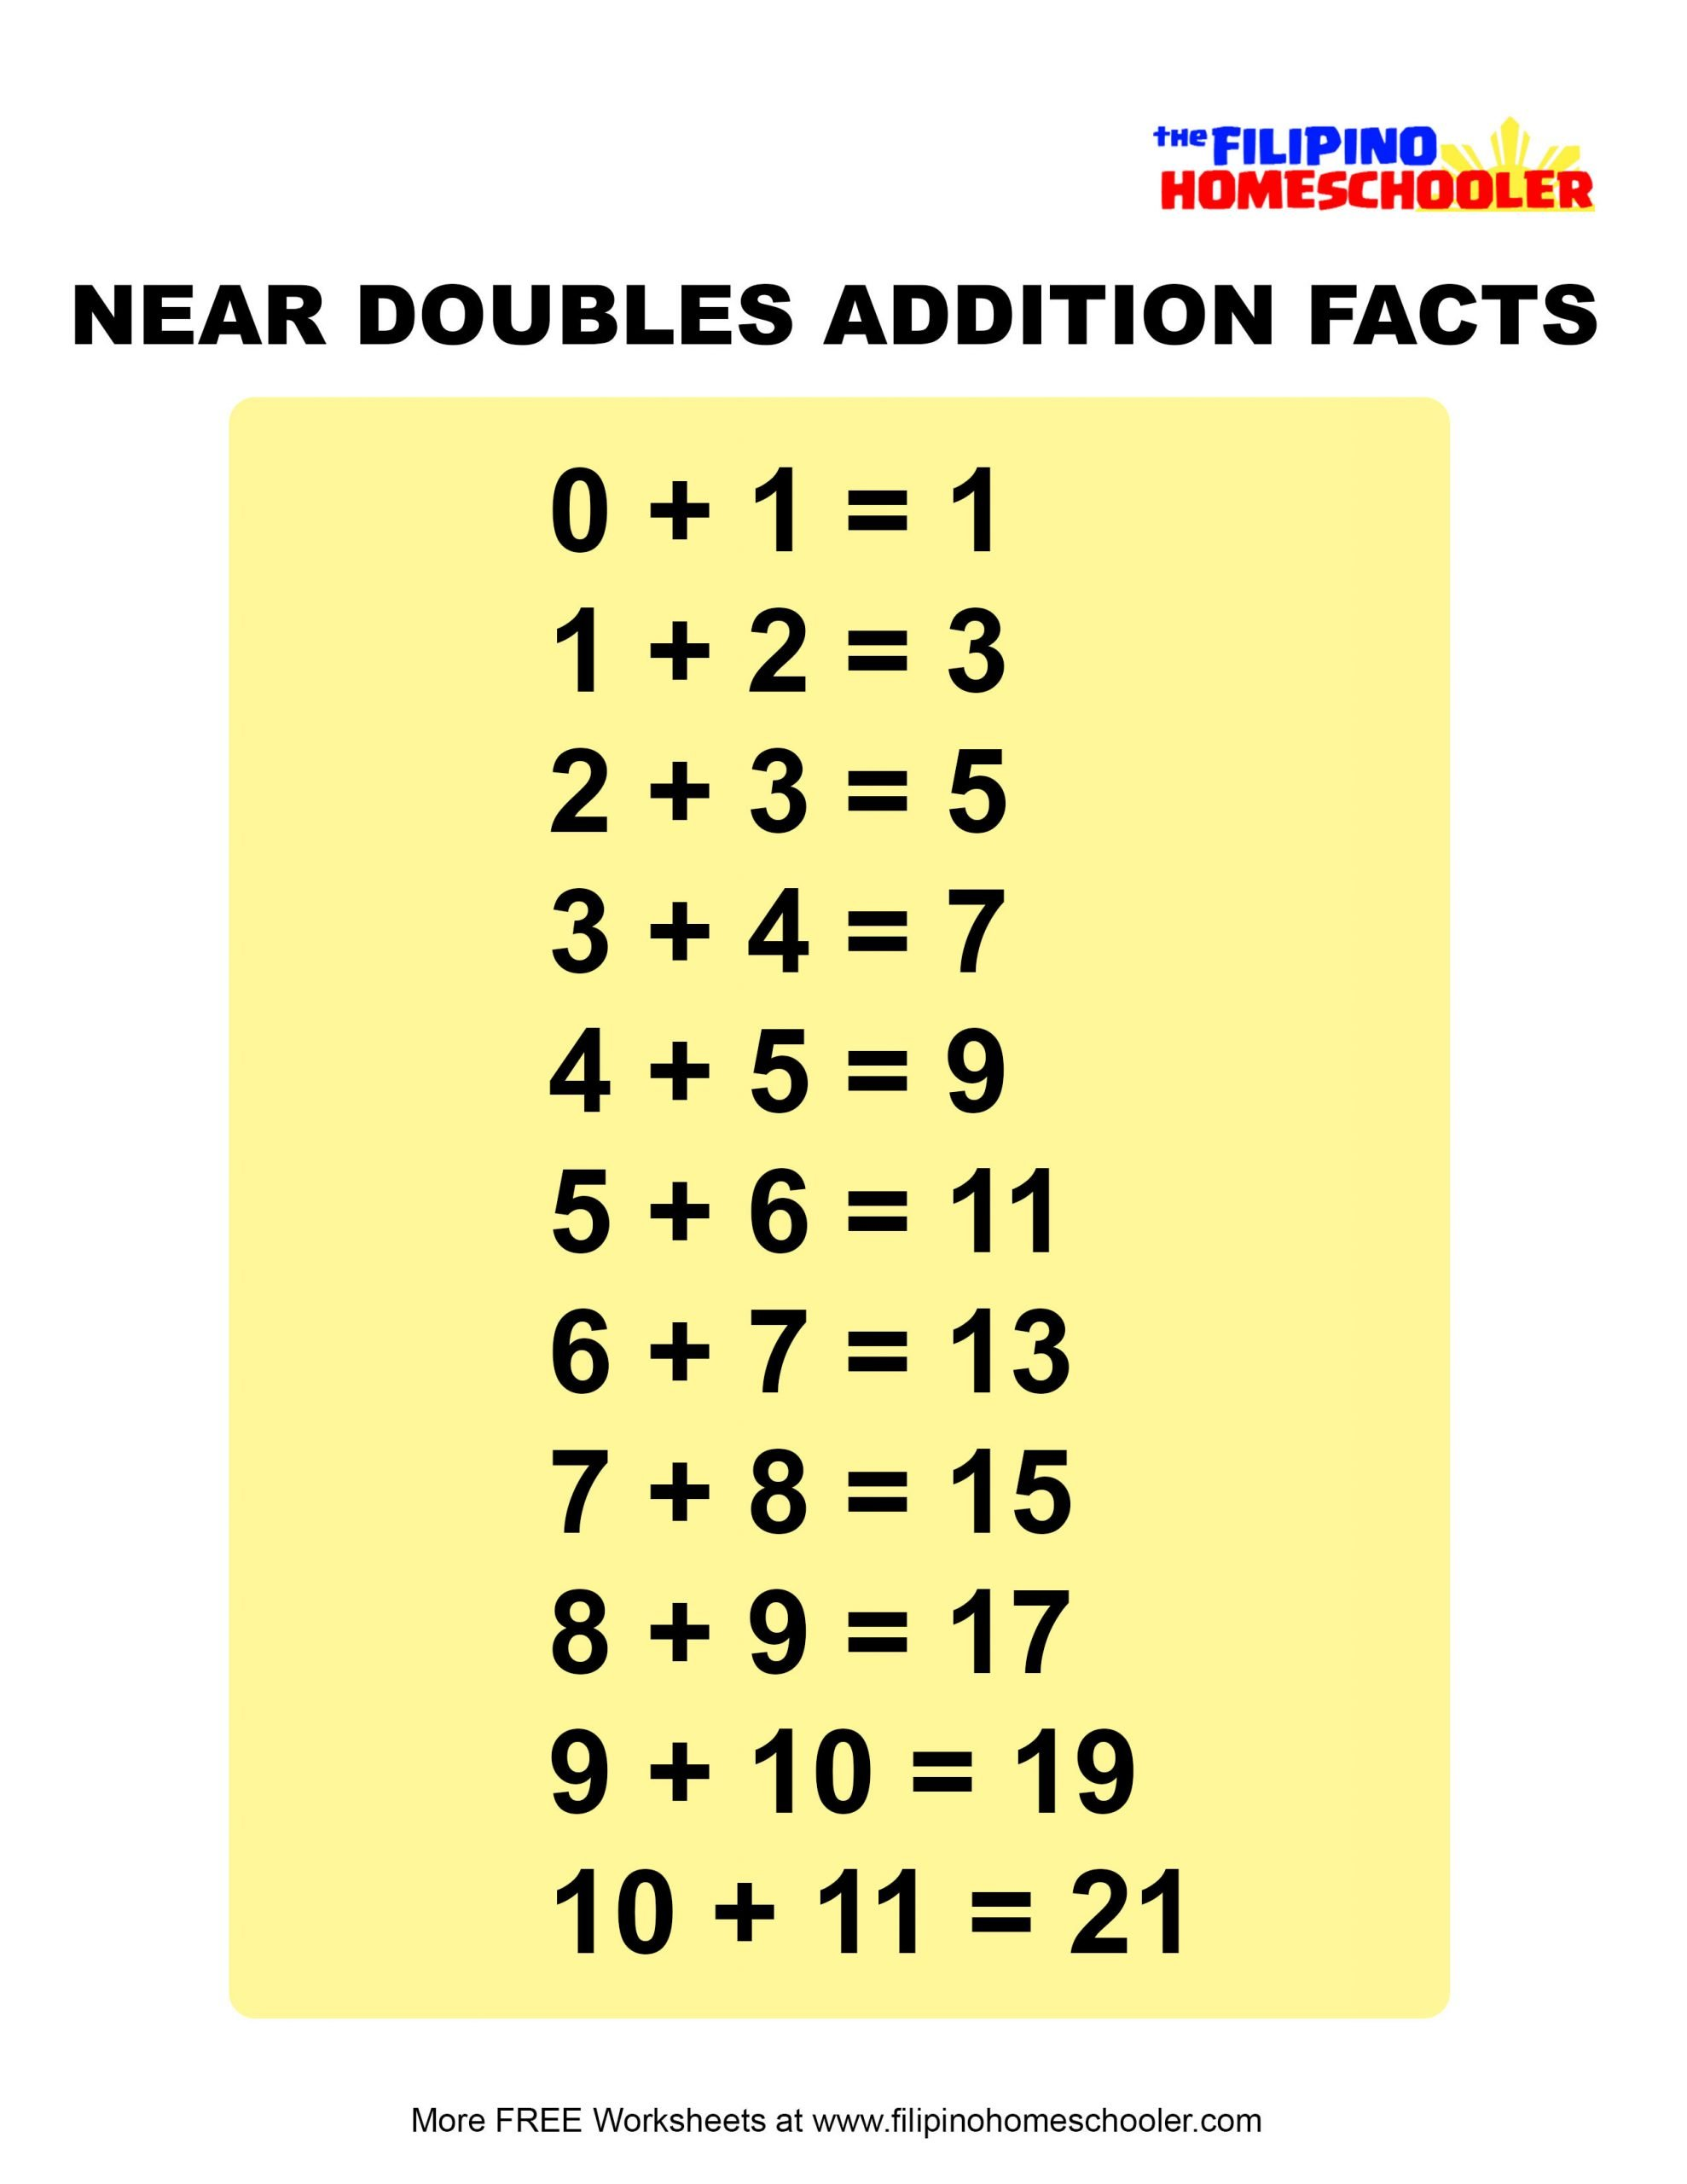 Doubles and Near Doubles Worksheets Adding Near Doubles Worksheets and Teaching Strategies — the